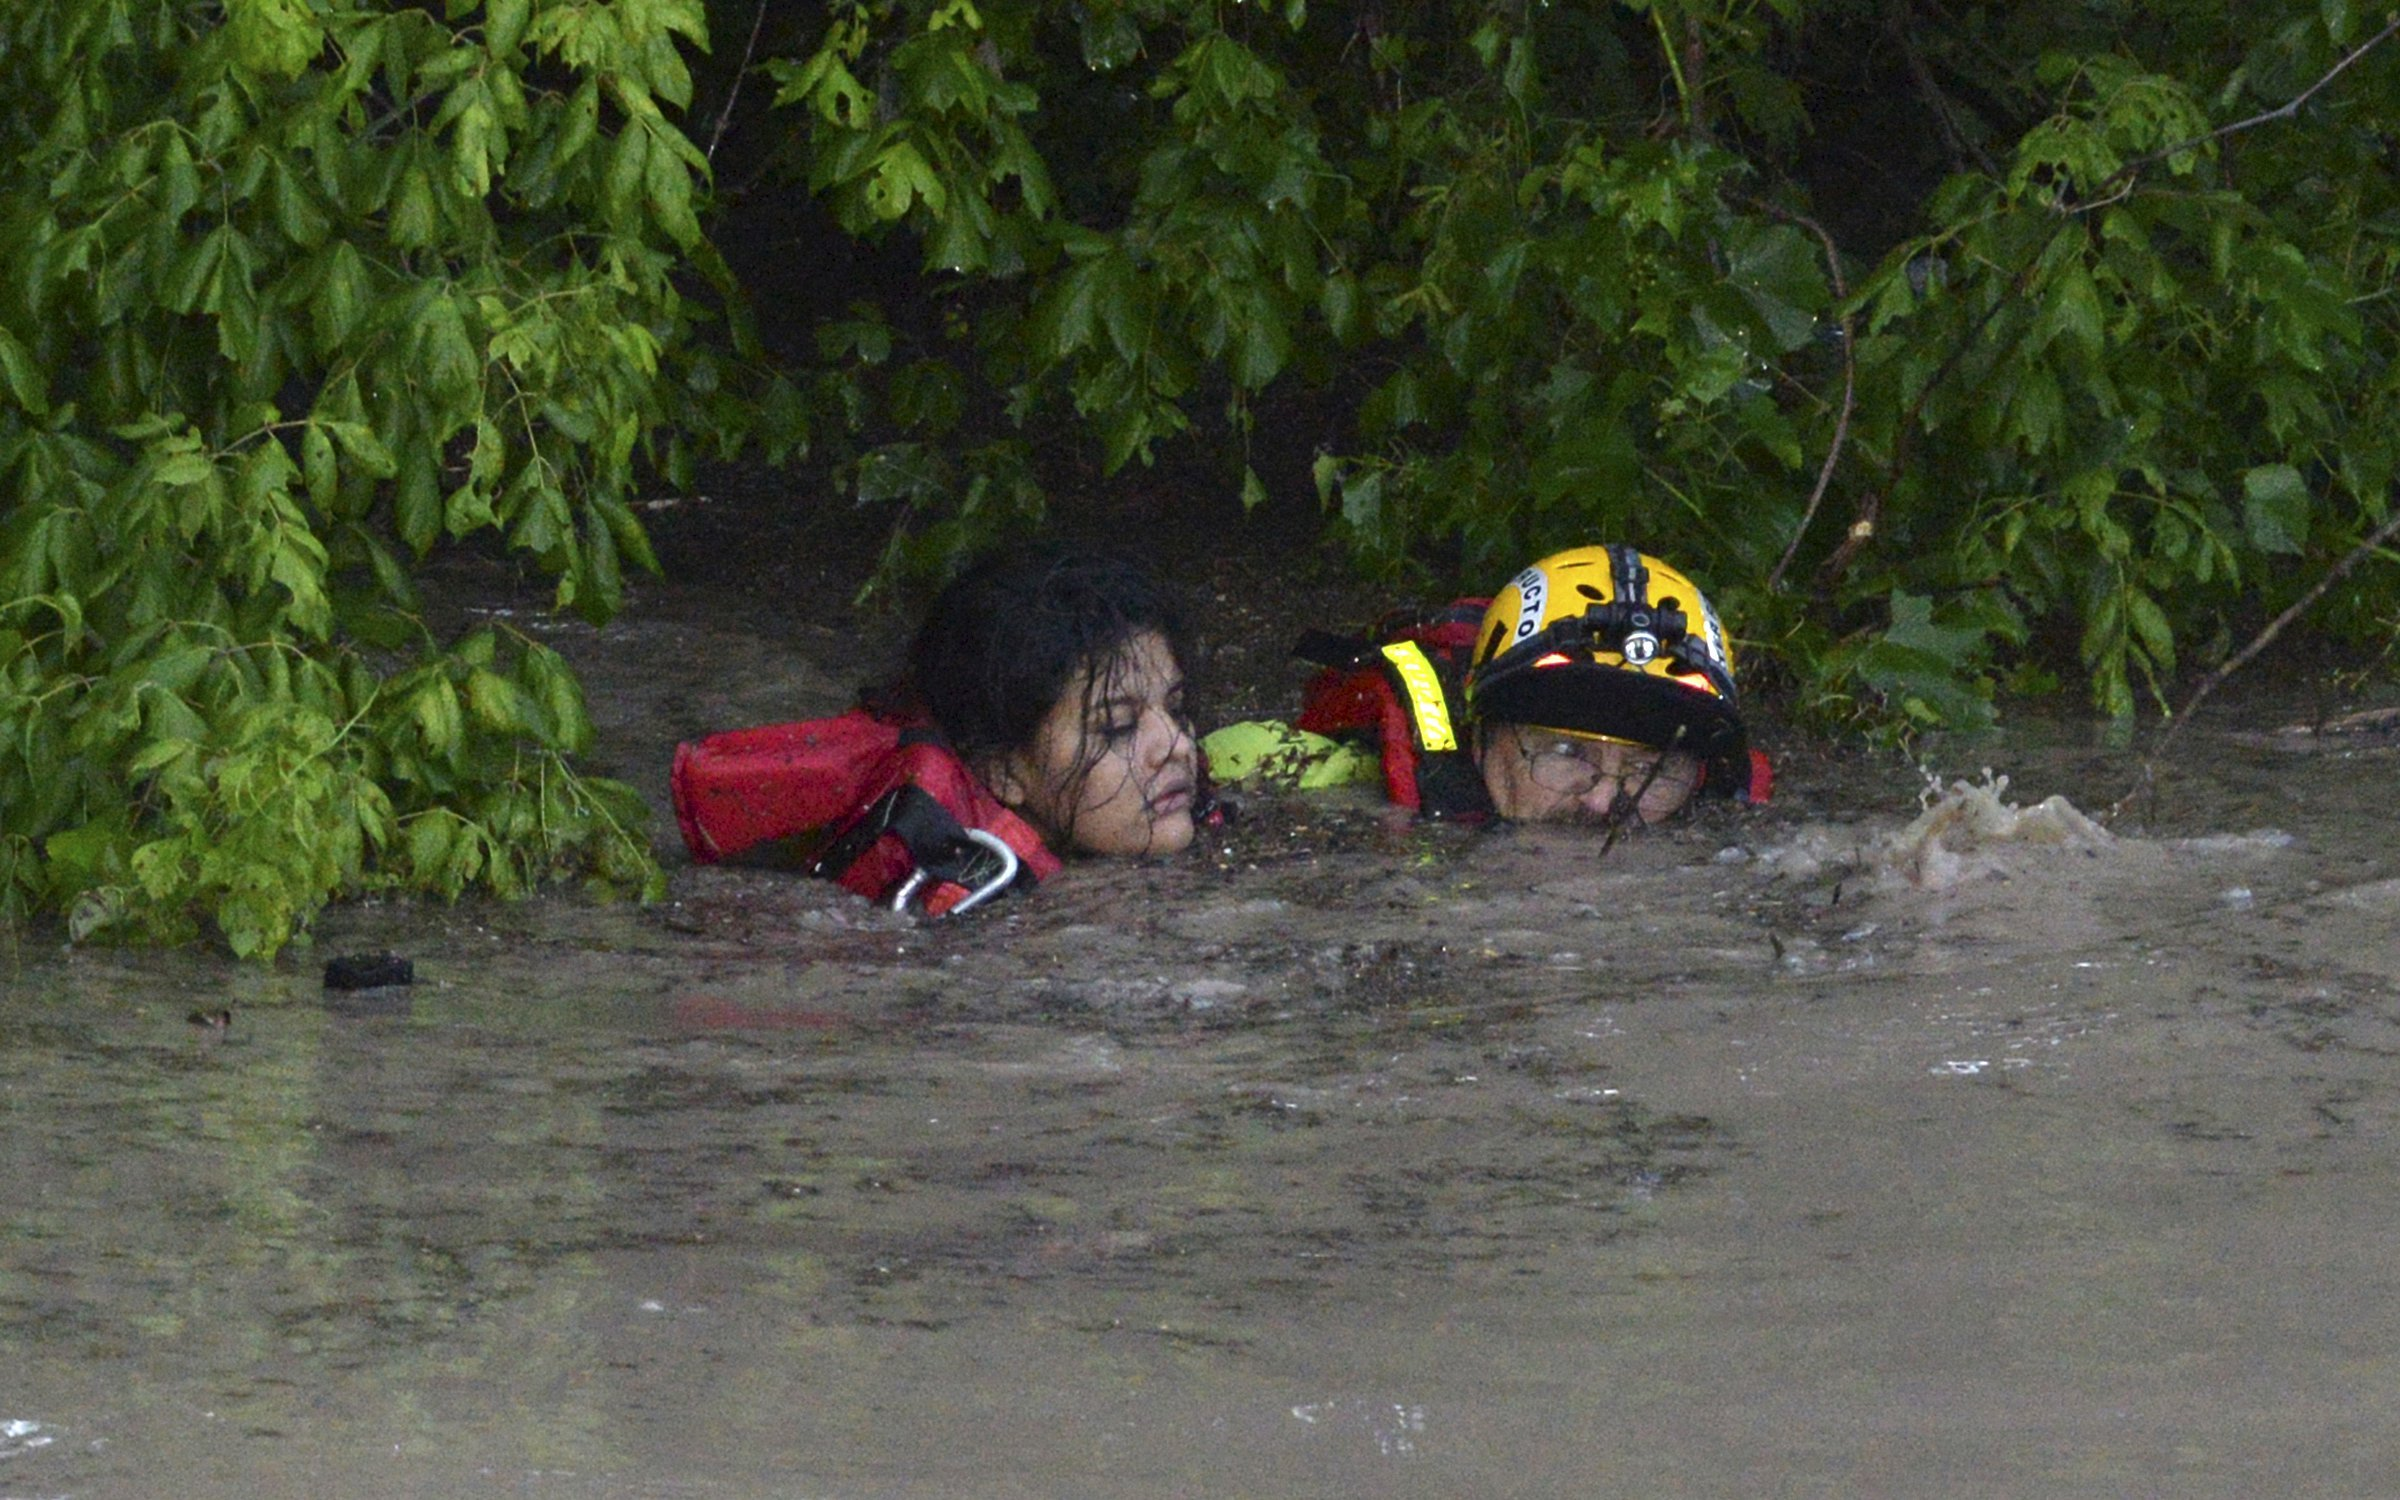 San Marcos Firefighter Jay Horton rescues a woman from the flood waters in San Marcos, Texas on May 24, 2015.